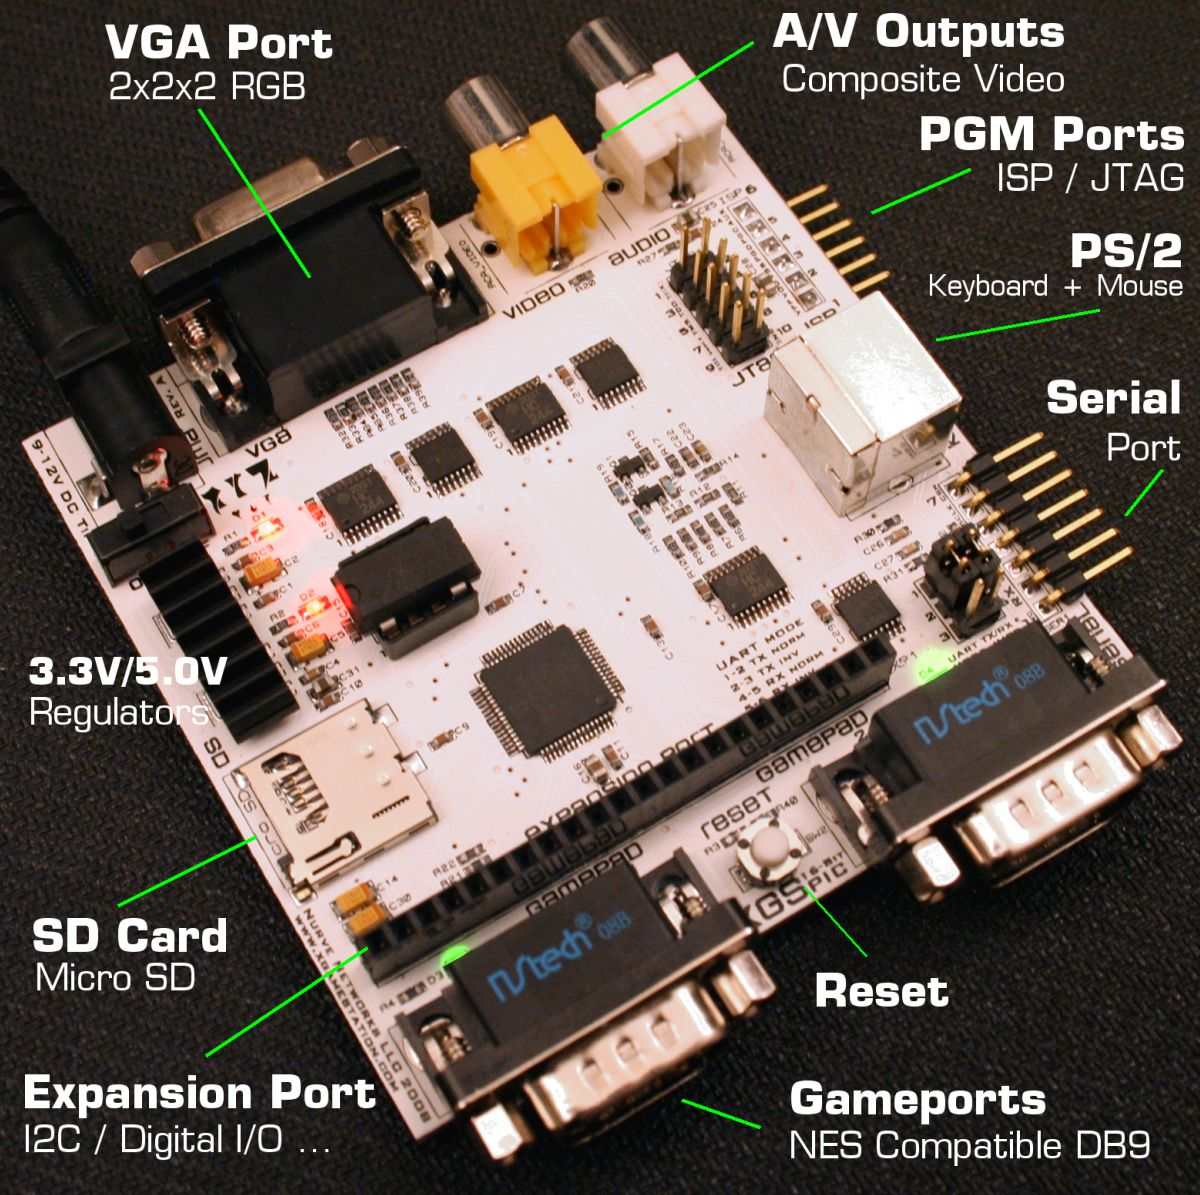 Xgs Pic 16 Bit Development System Professional Avr Experiment Board Usb Isp Programmer Circuit Sprint Main Annotated